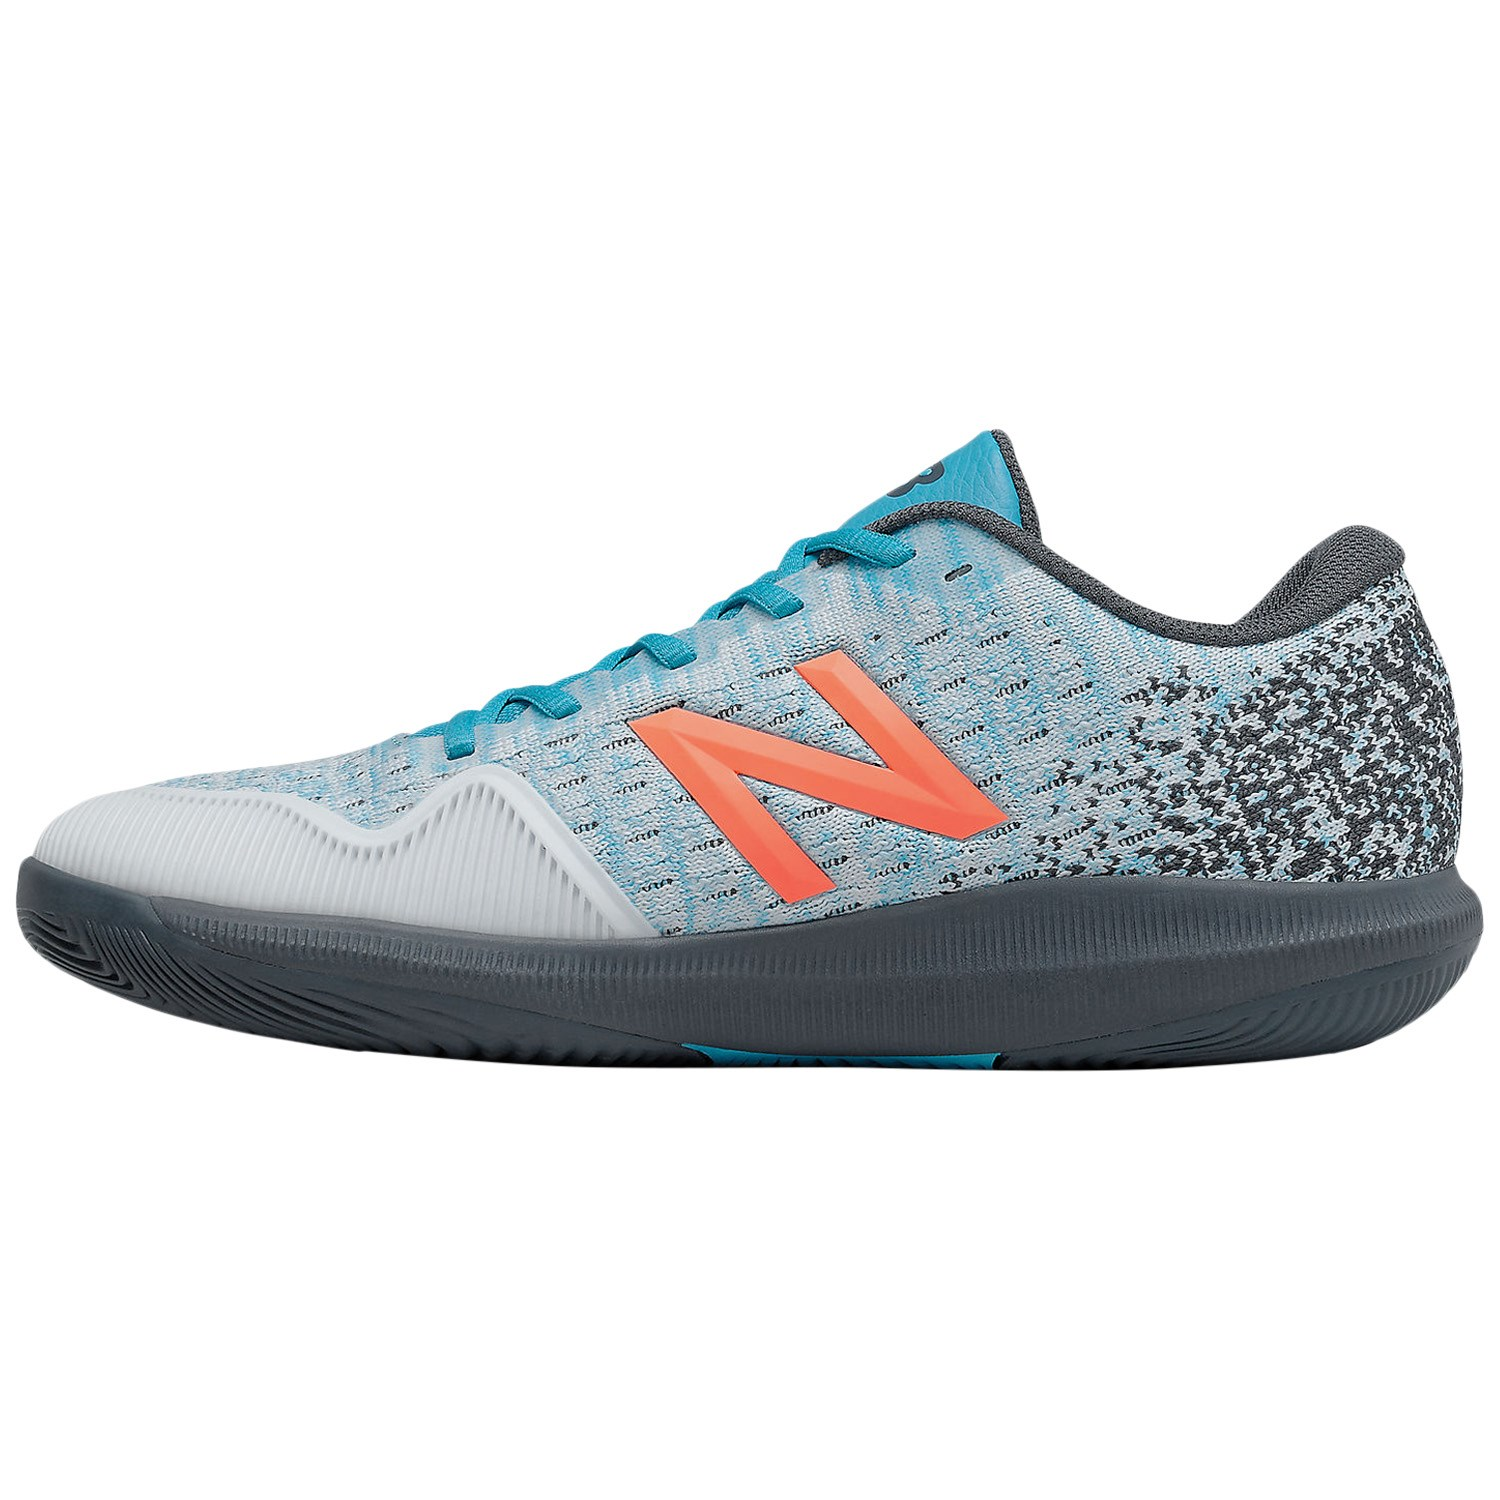 New Balance MCH996v4 Men's Tennis Shoe – Blue/Navy/White